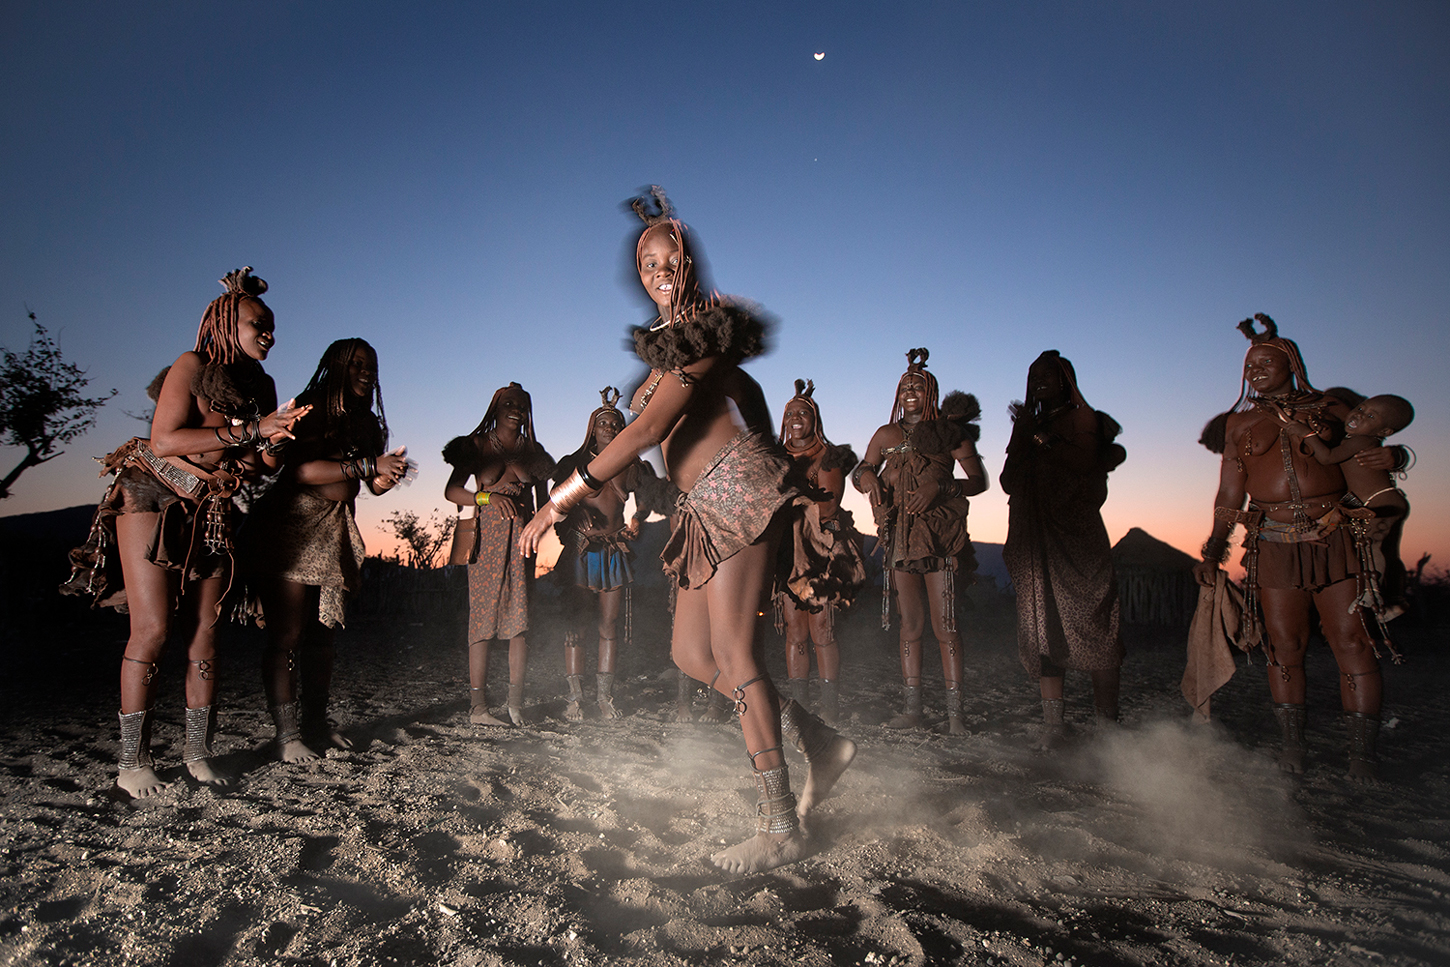 Himba people in Epupa, Namibia ©Ben McRae